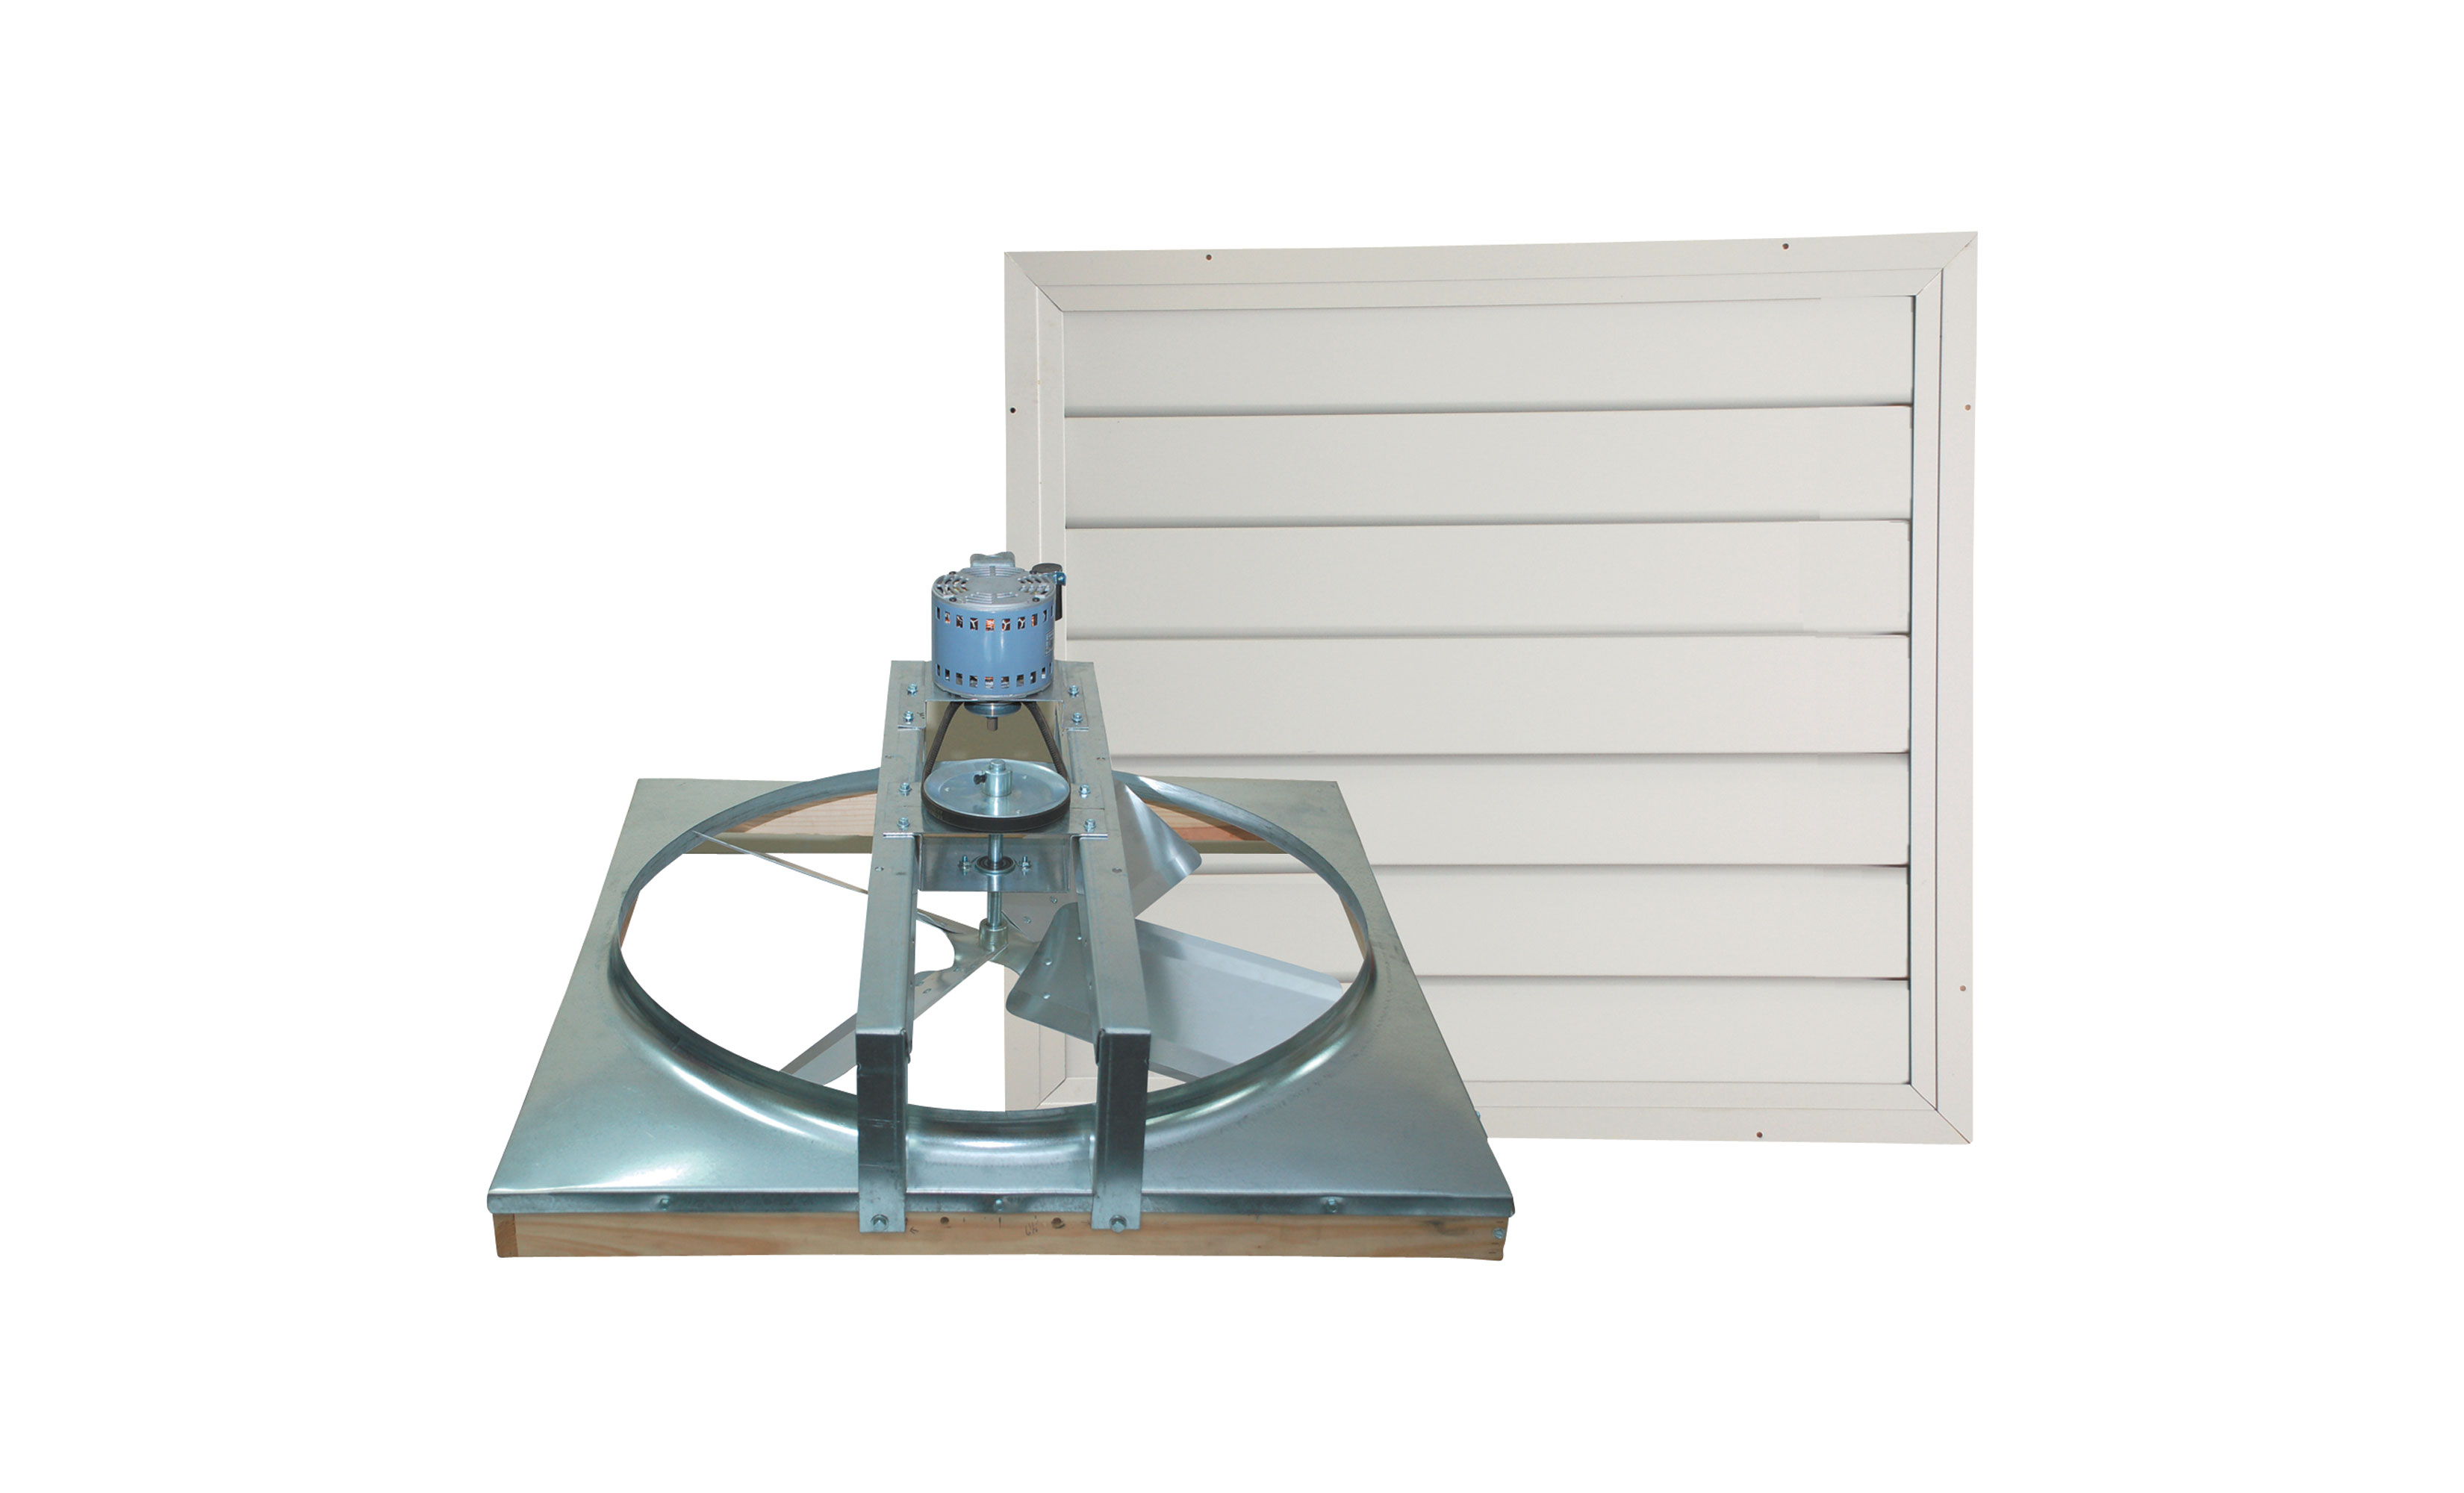 Insulated Cover For Whole House Attic Fan Grate The Diy Girl